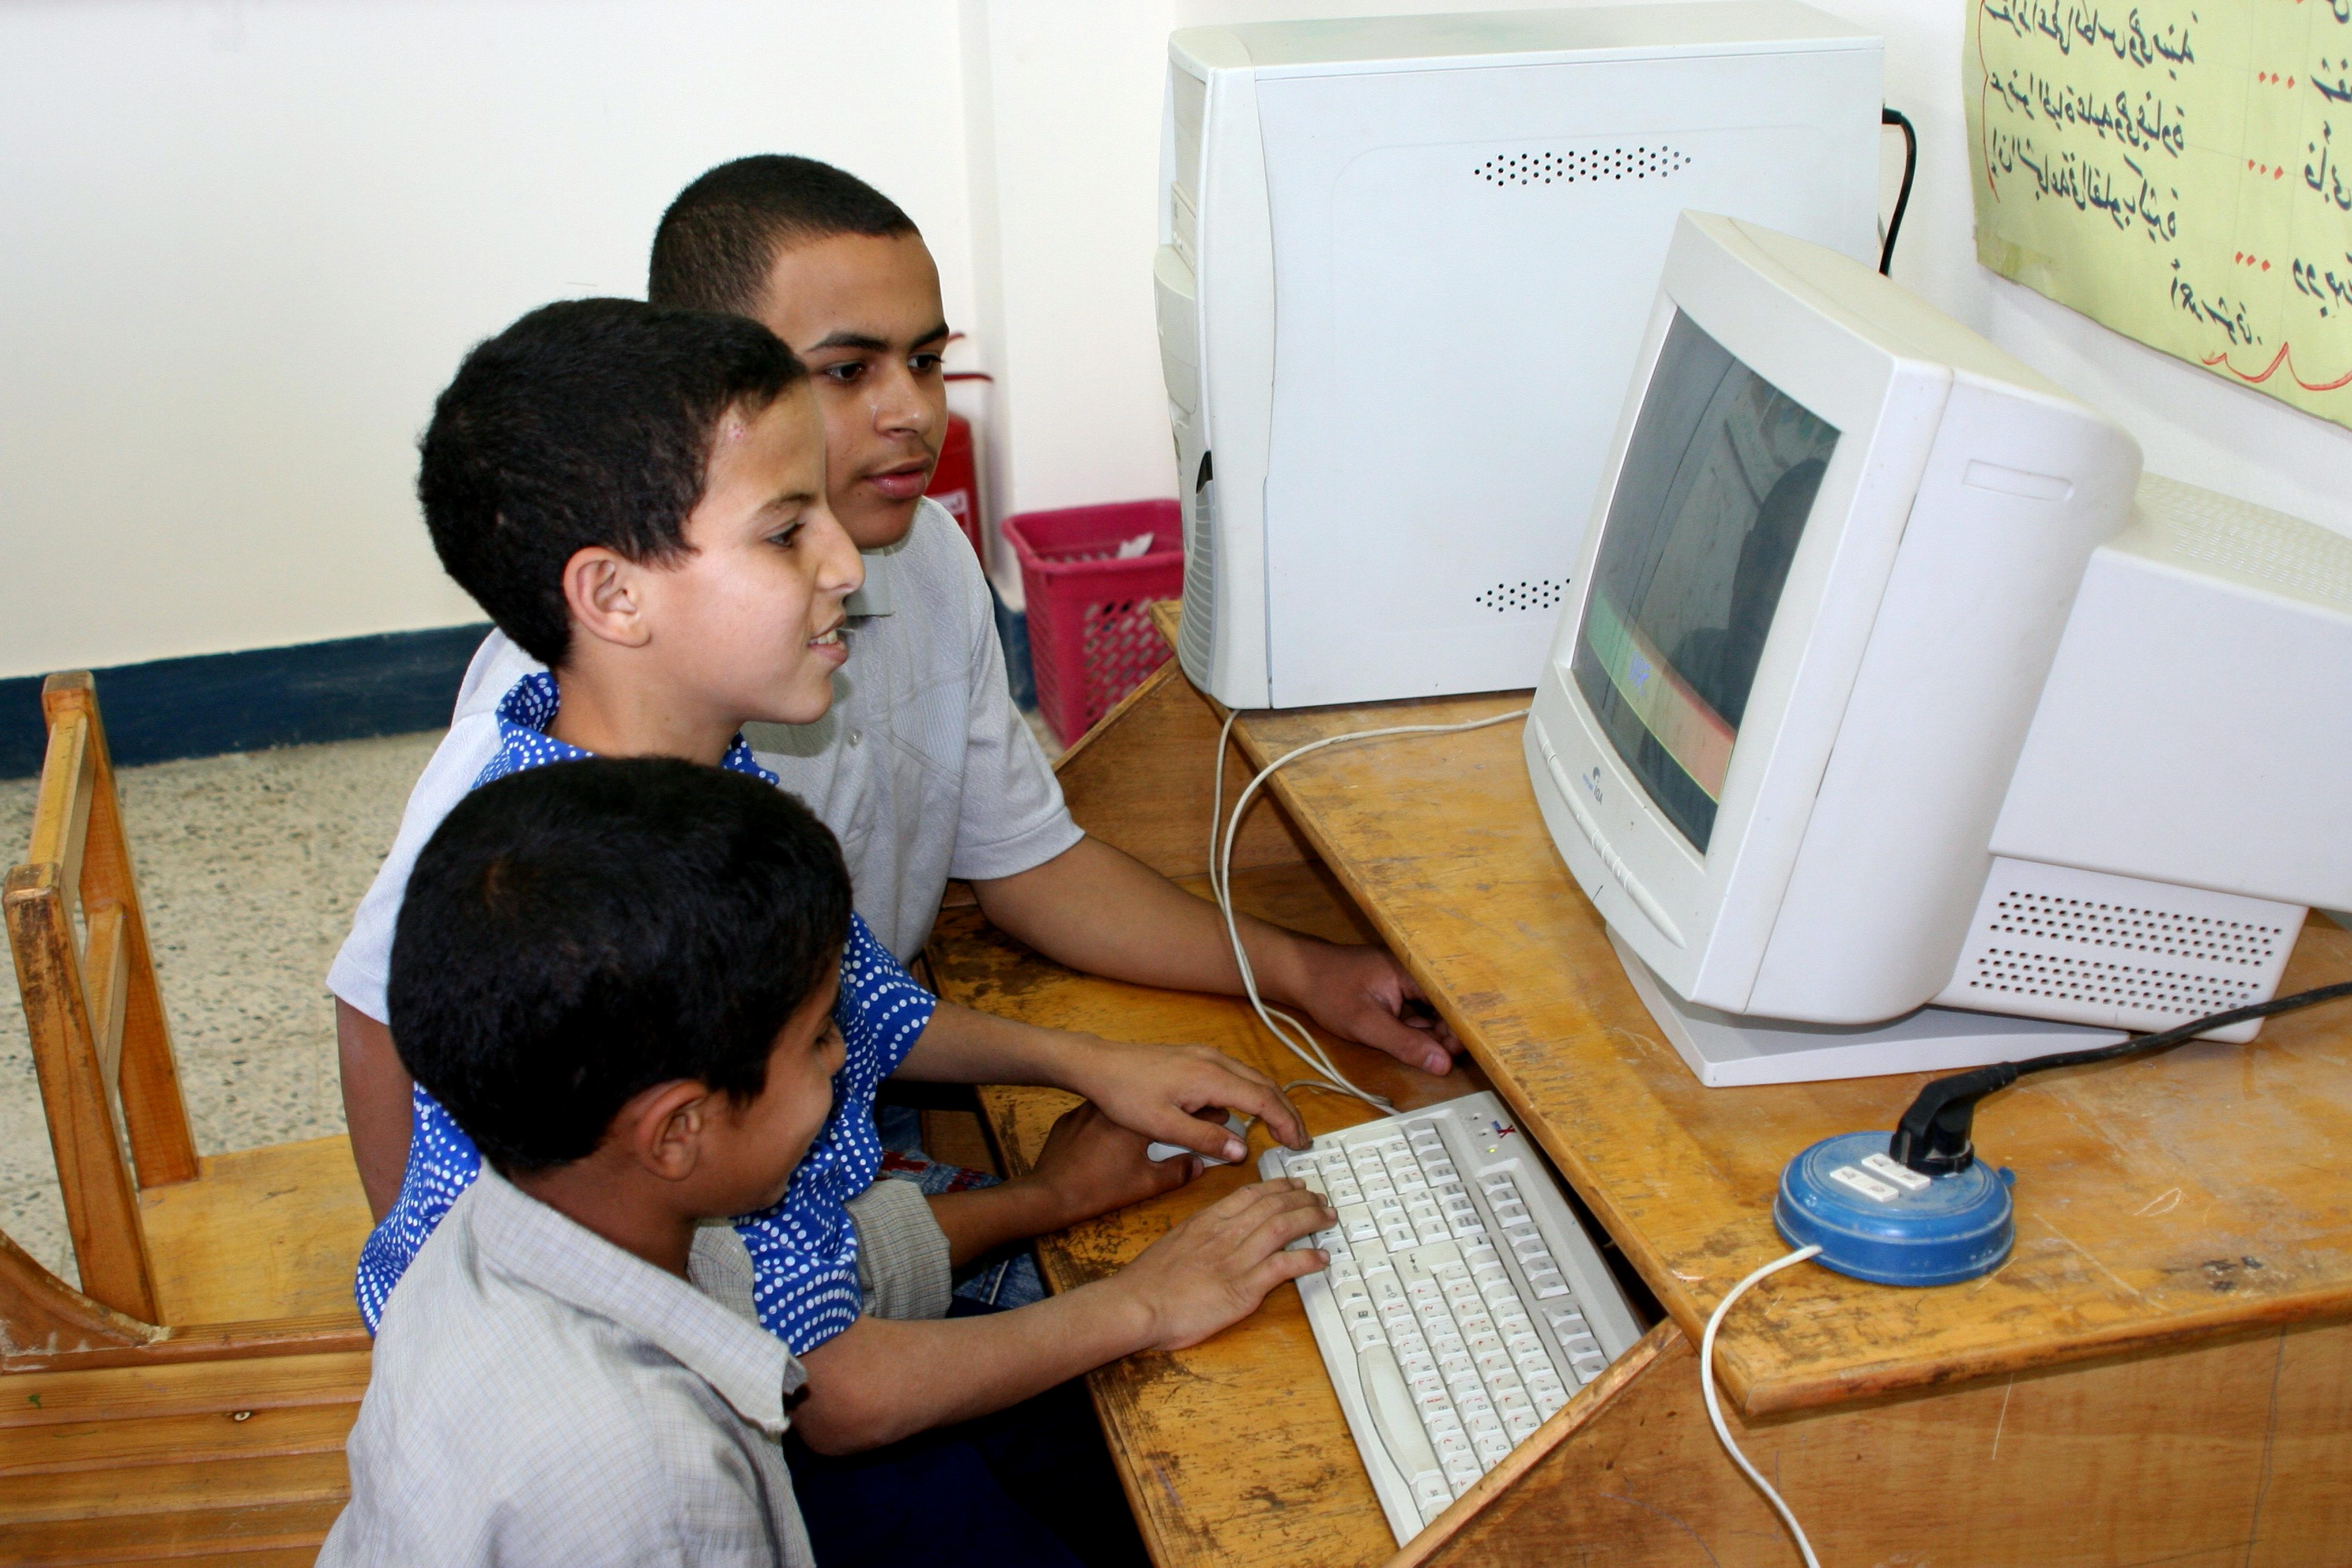 Worksheet Educational Computer Programs For Kids free picture education program computers egypt school children children